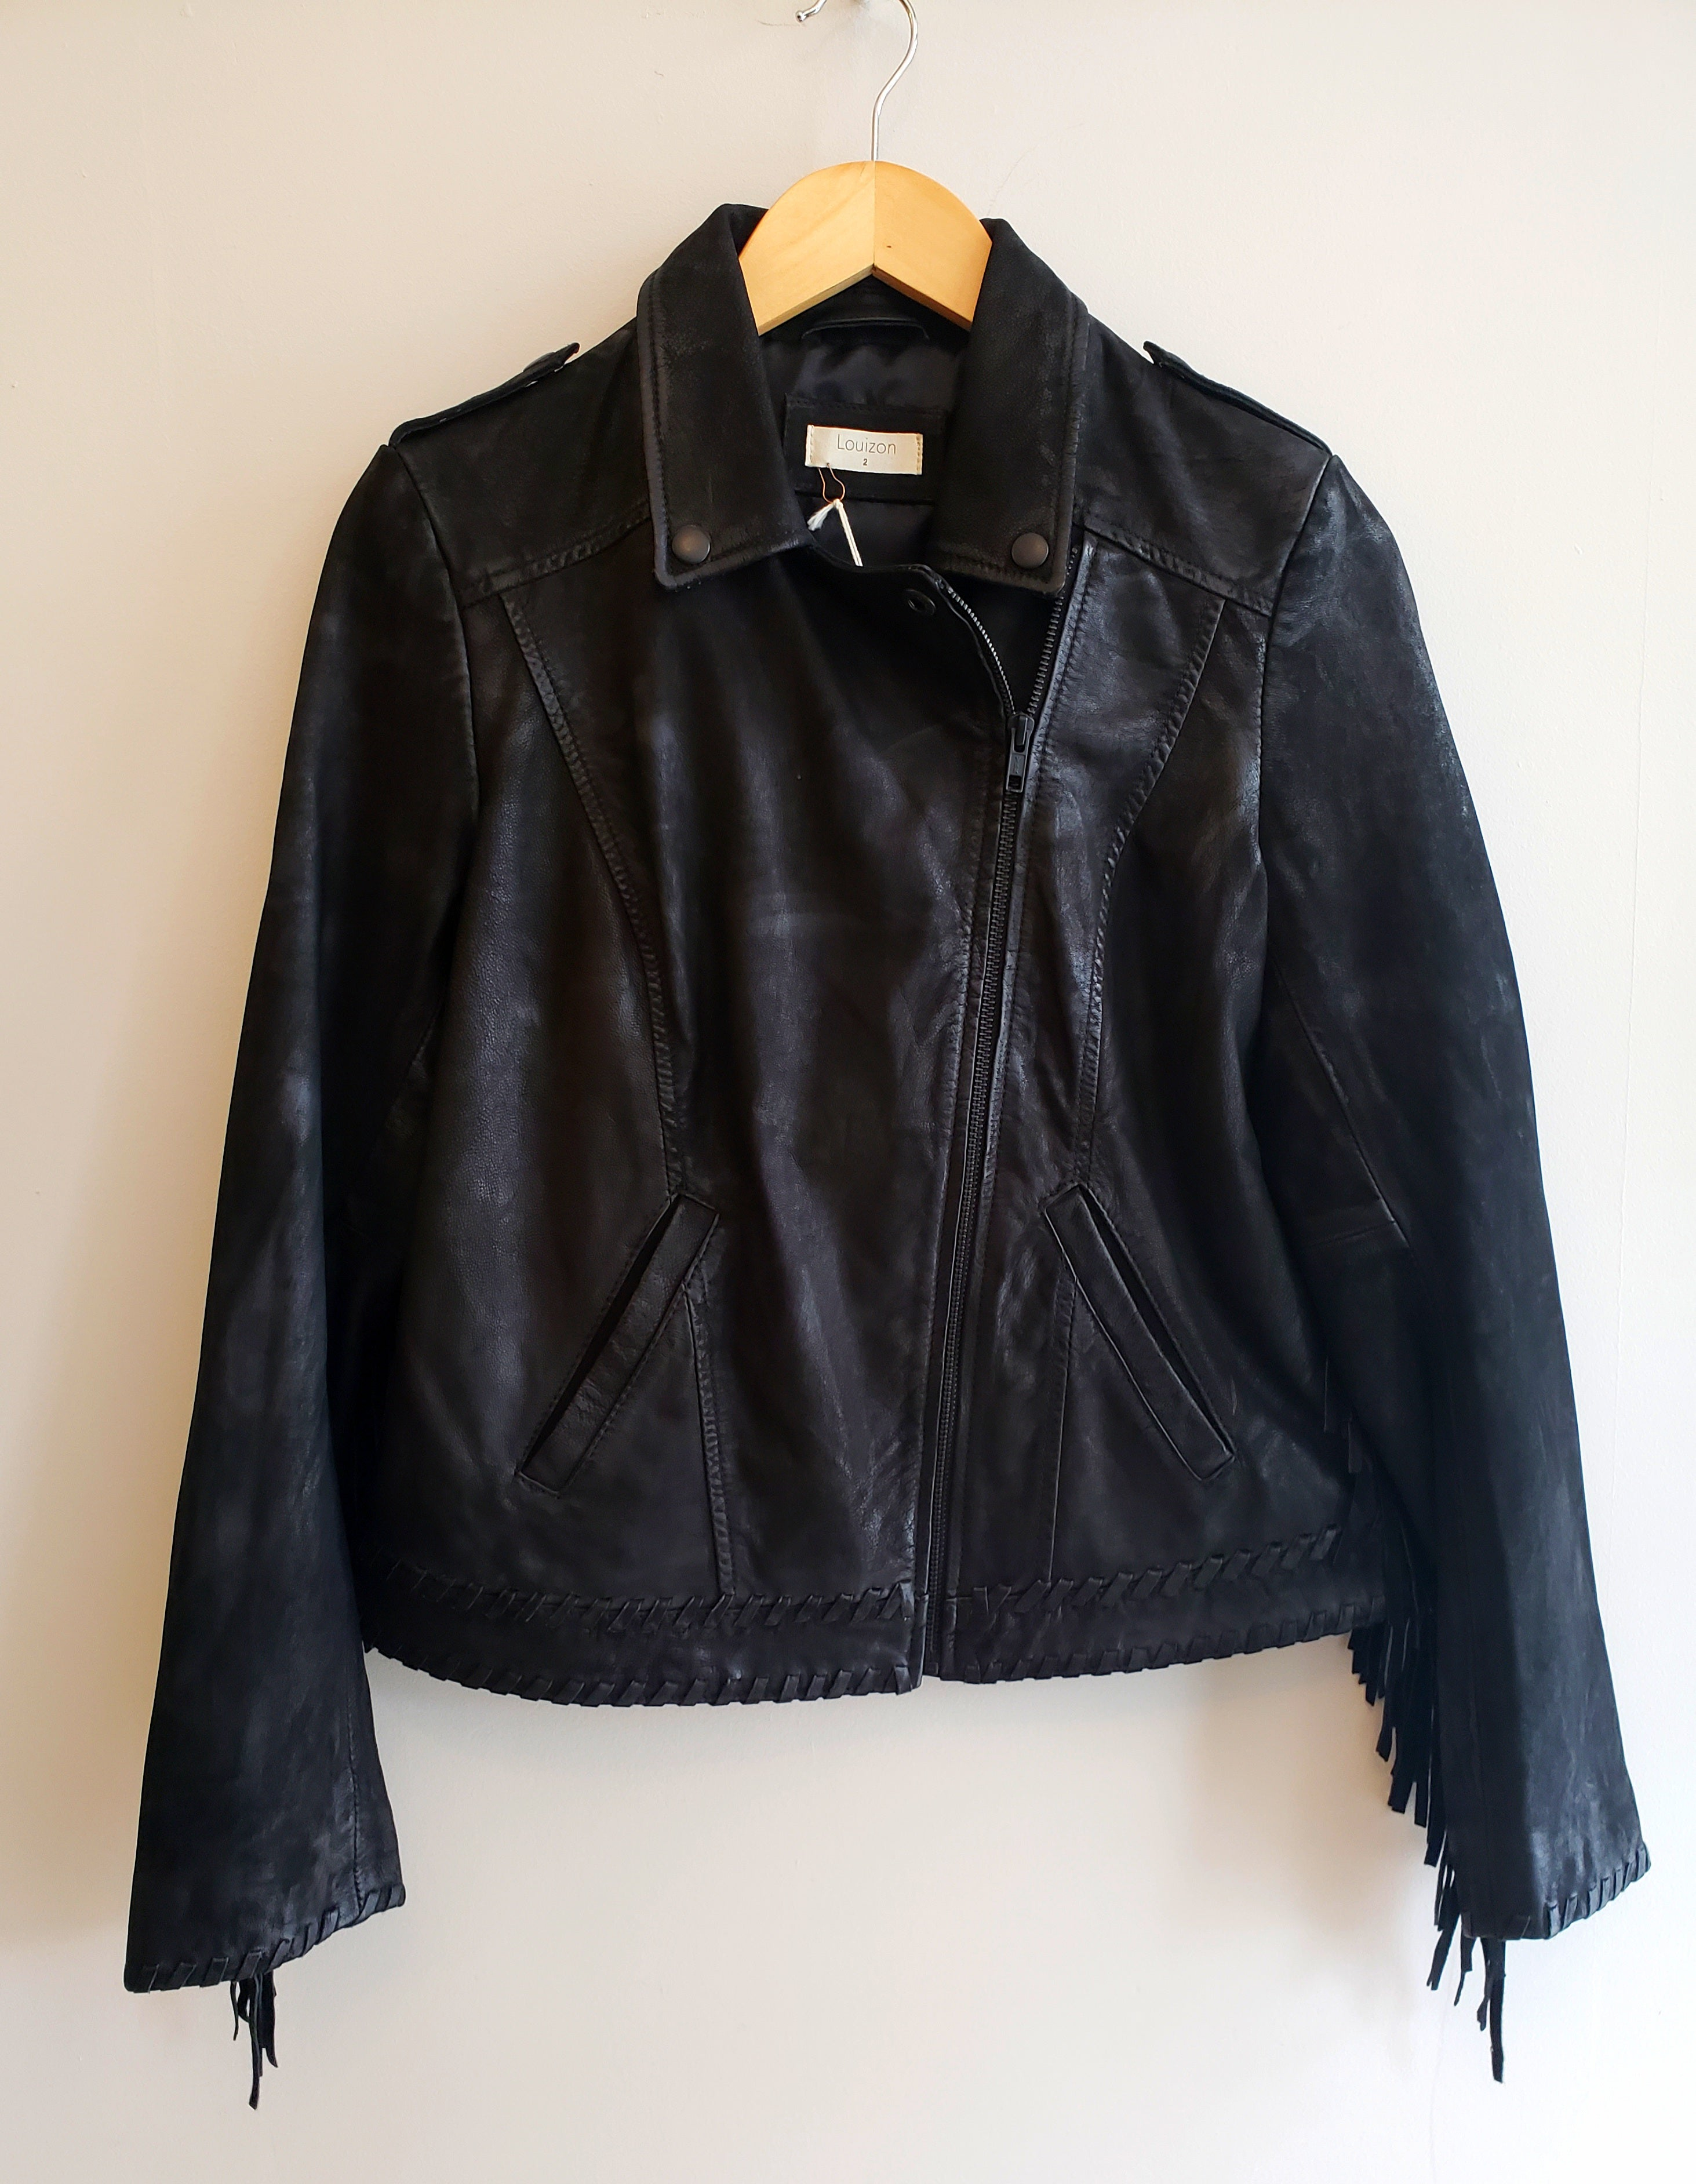 Perfecto Fringe Leather Jacket in Black